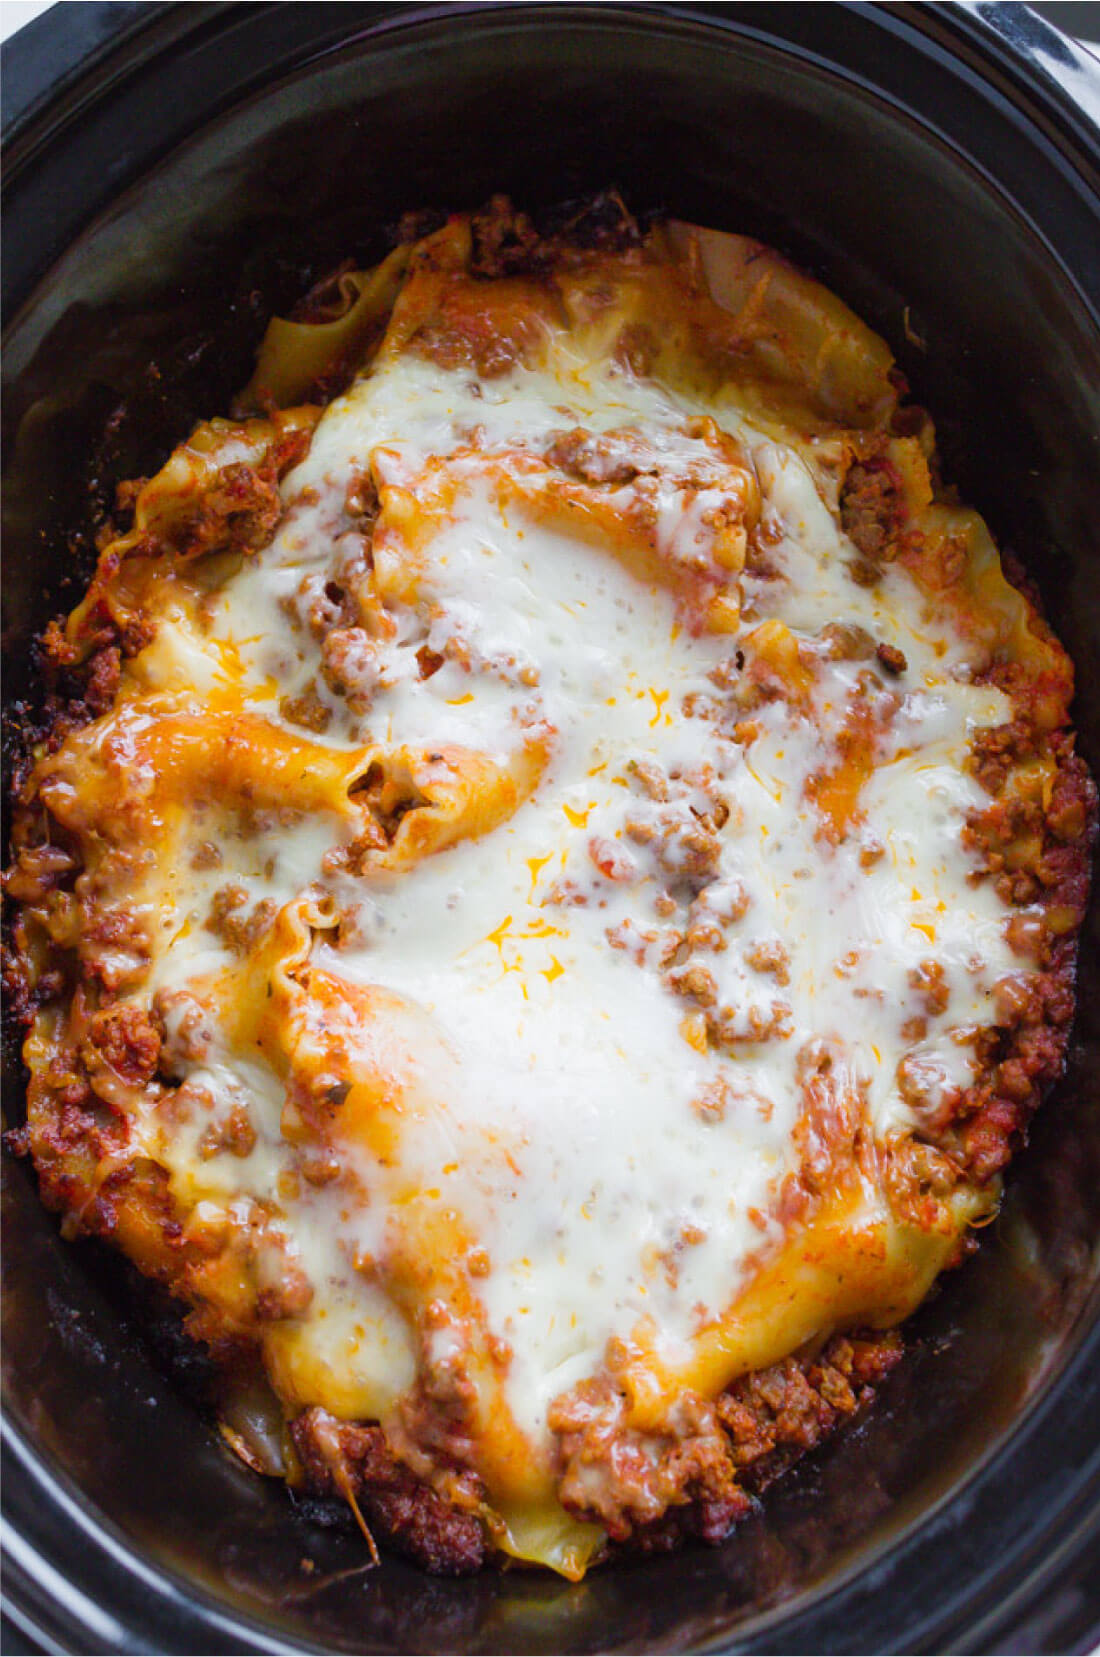 How to layer crockpot lasagna - an easy way to make lasagna!